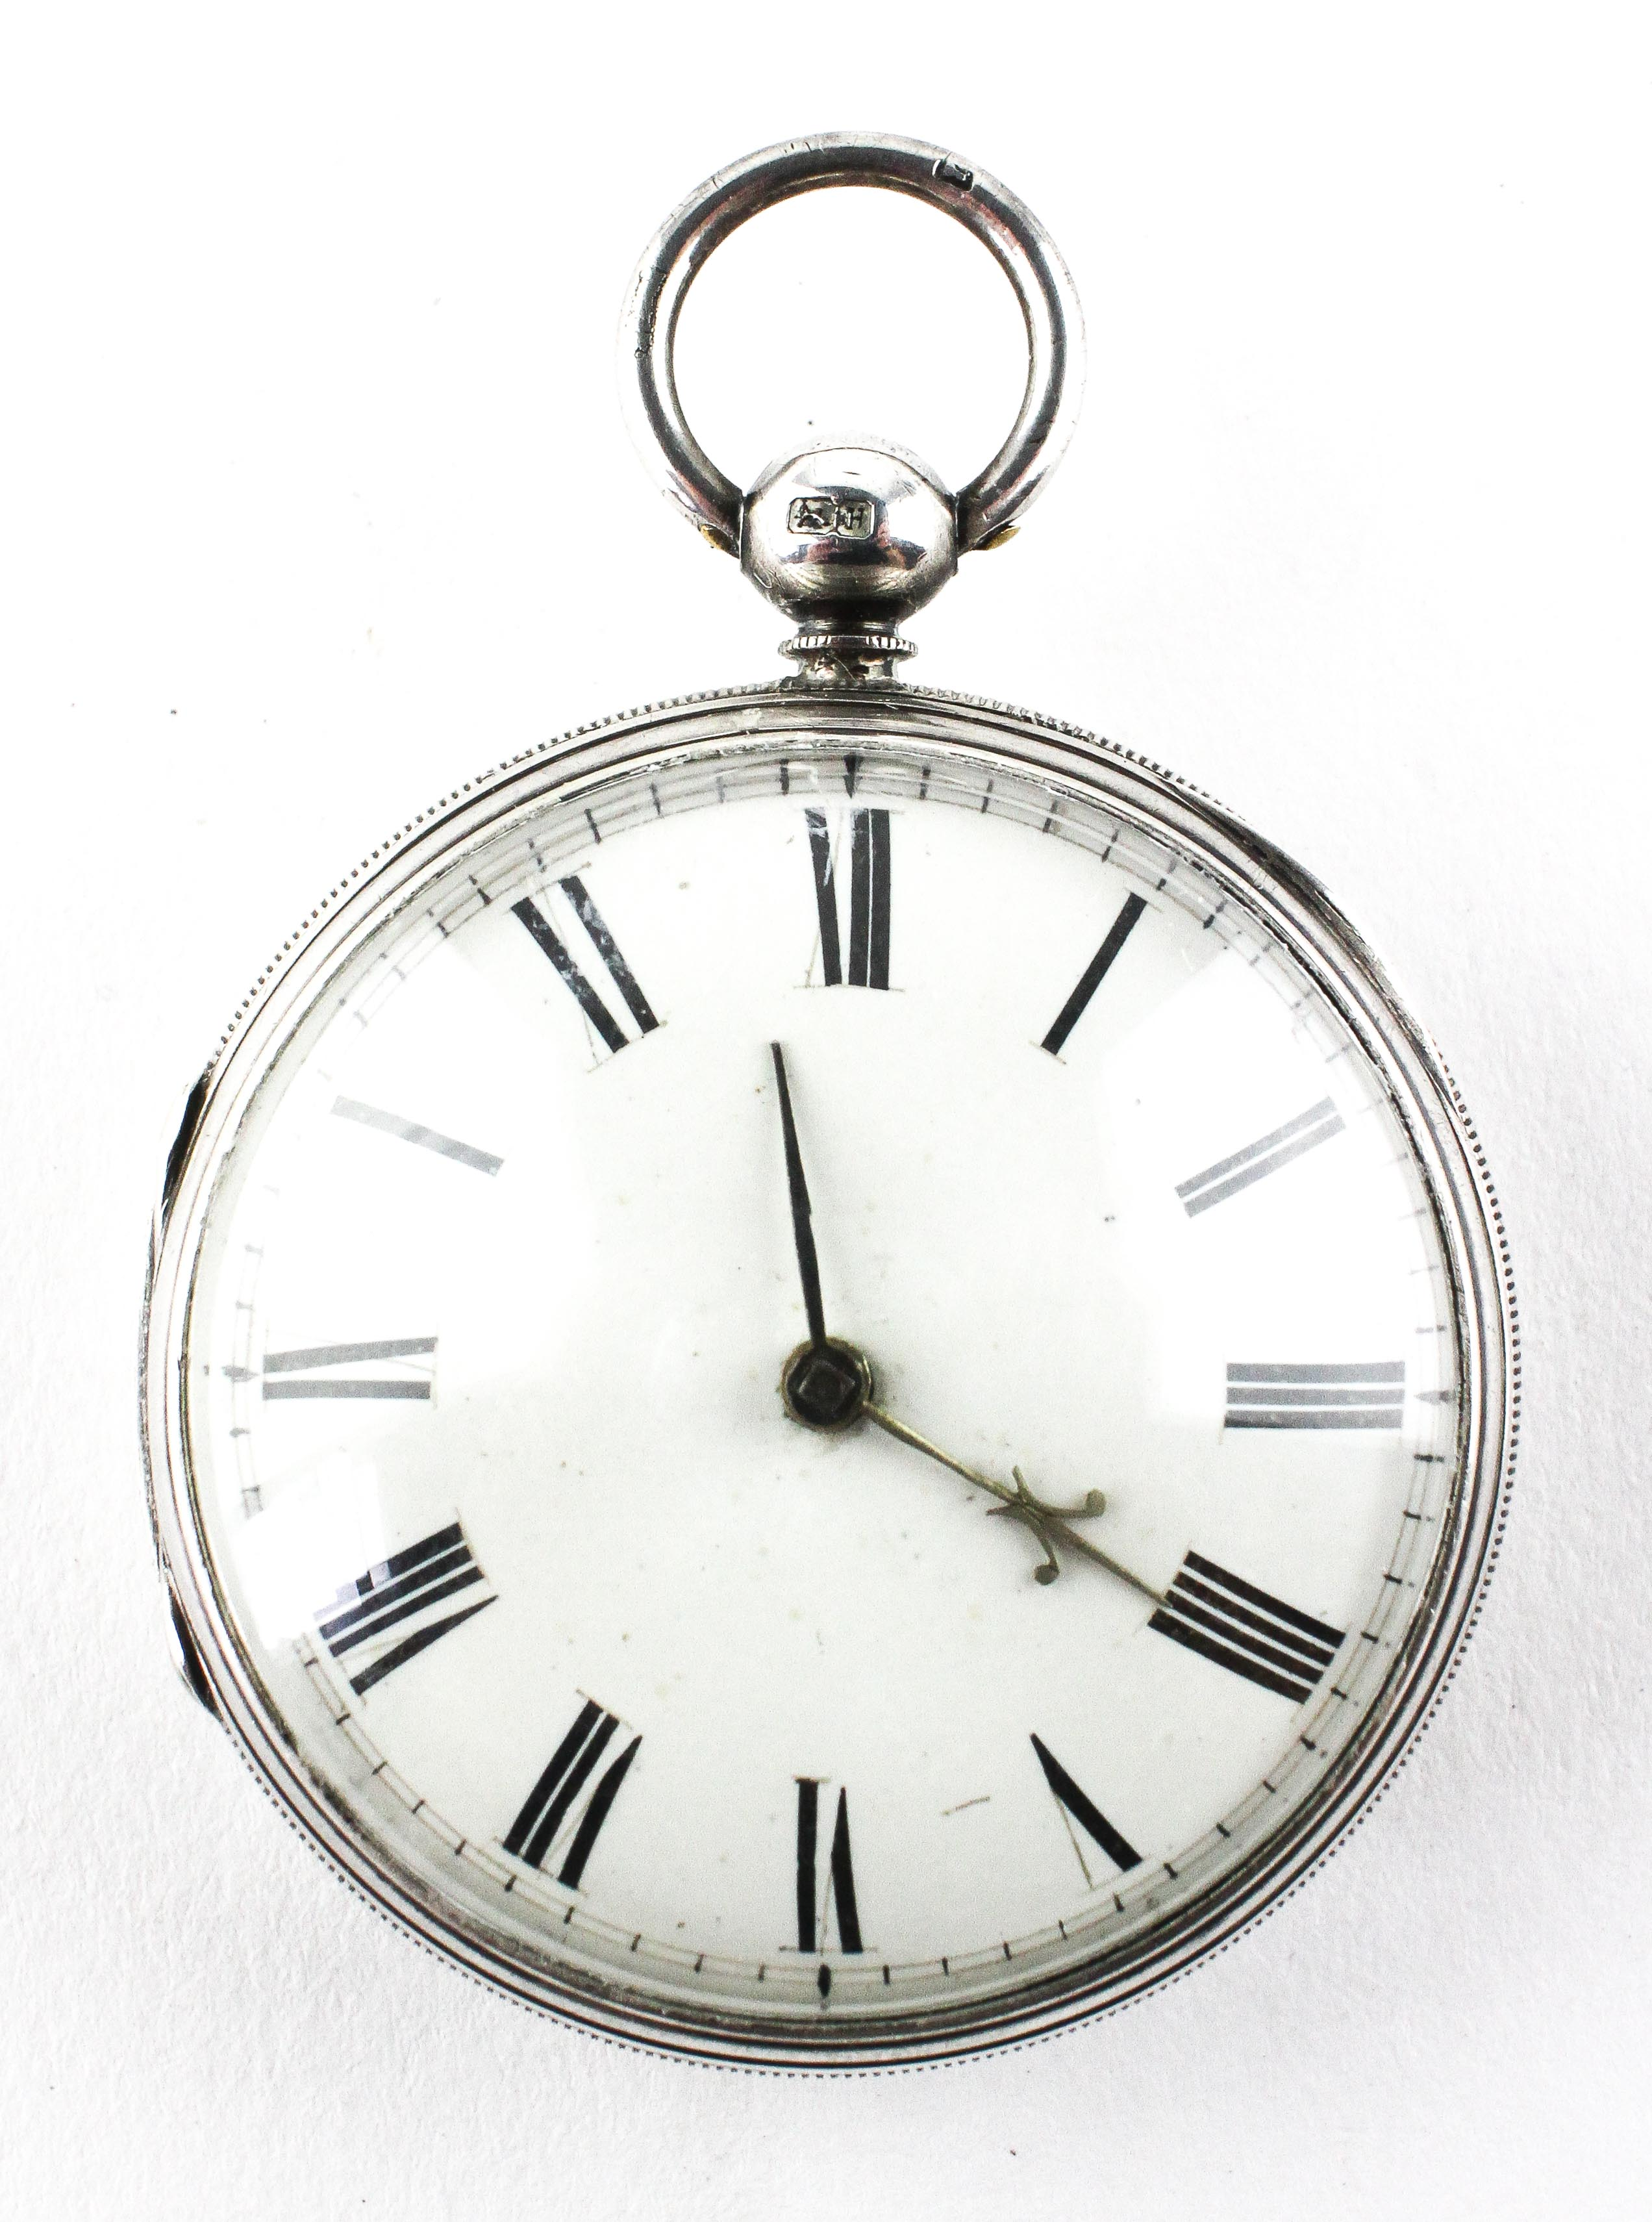 A large open face pocket watch. Circular white dial with roman numerals. Key wound movement.